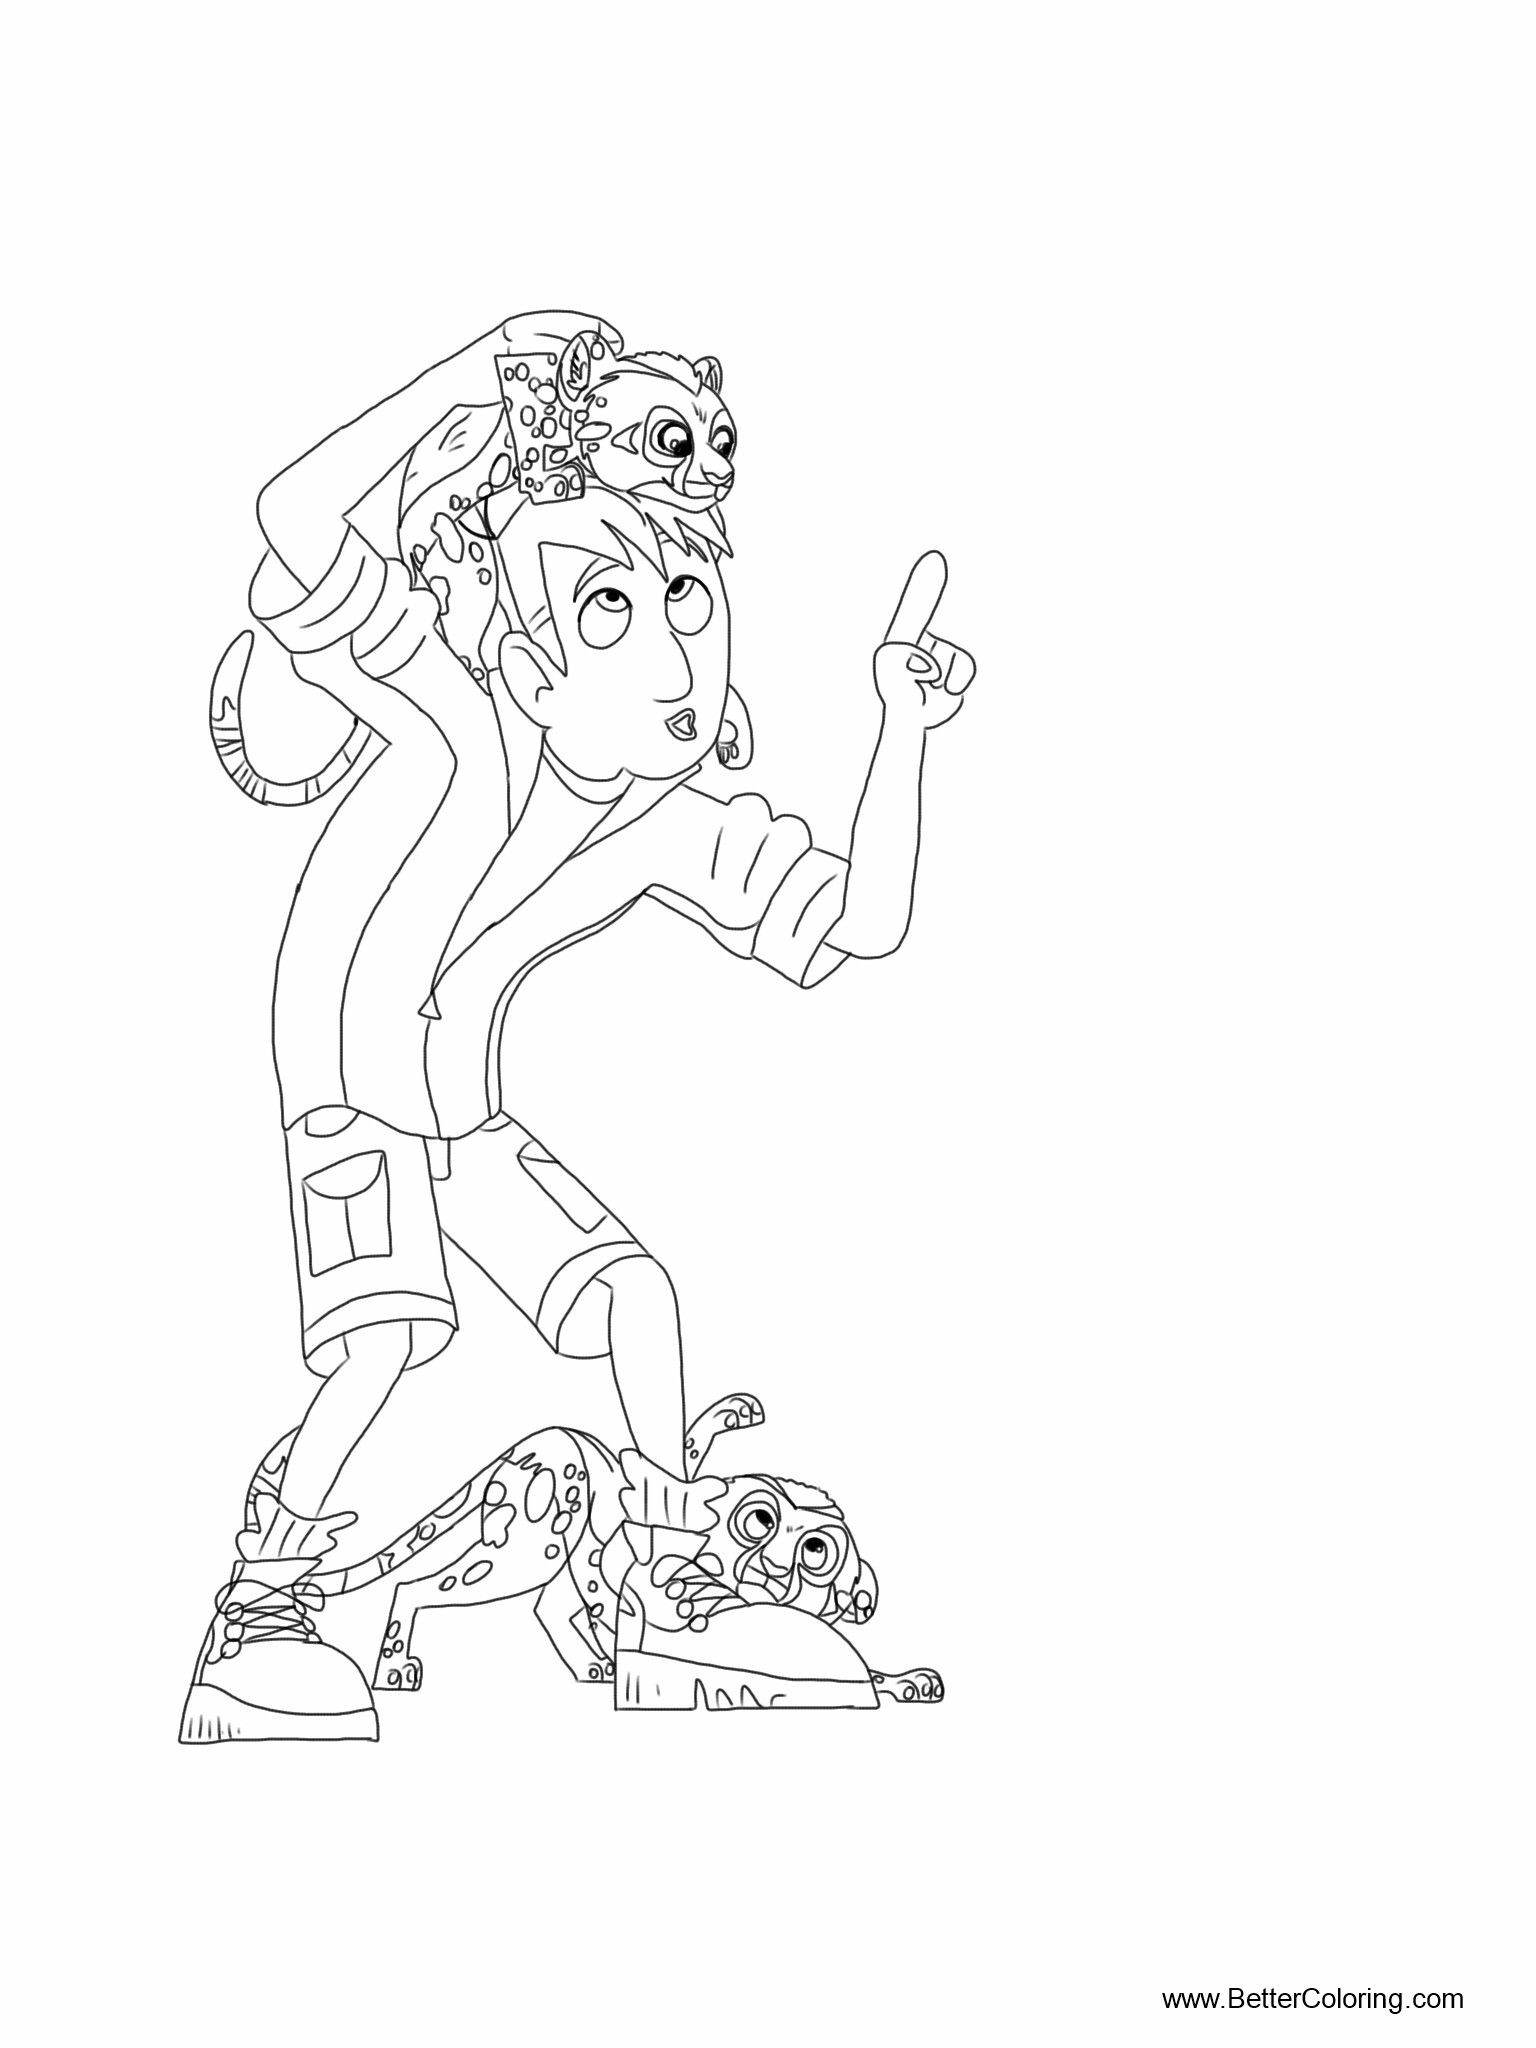 Free Wild Kratts Coloring Pages with Cheetah printable